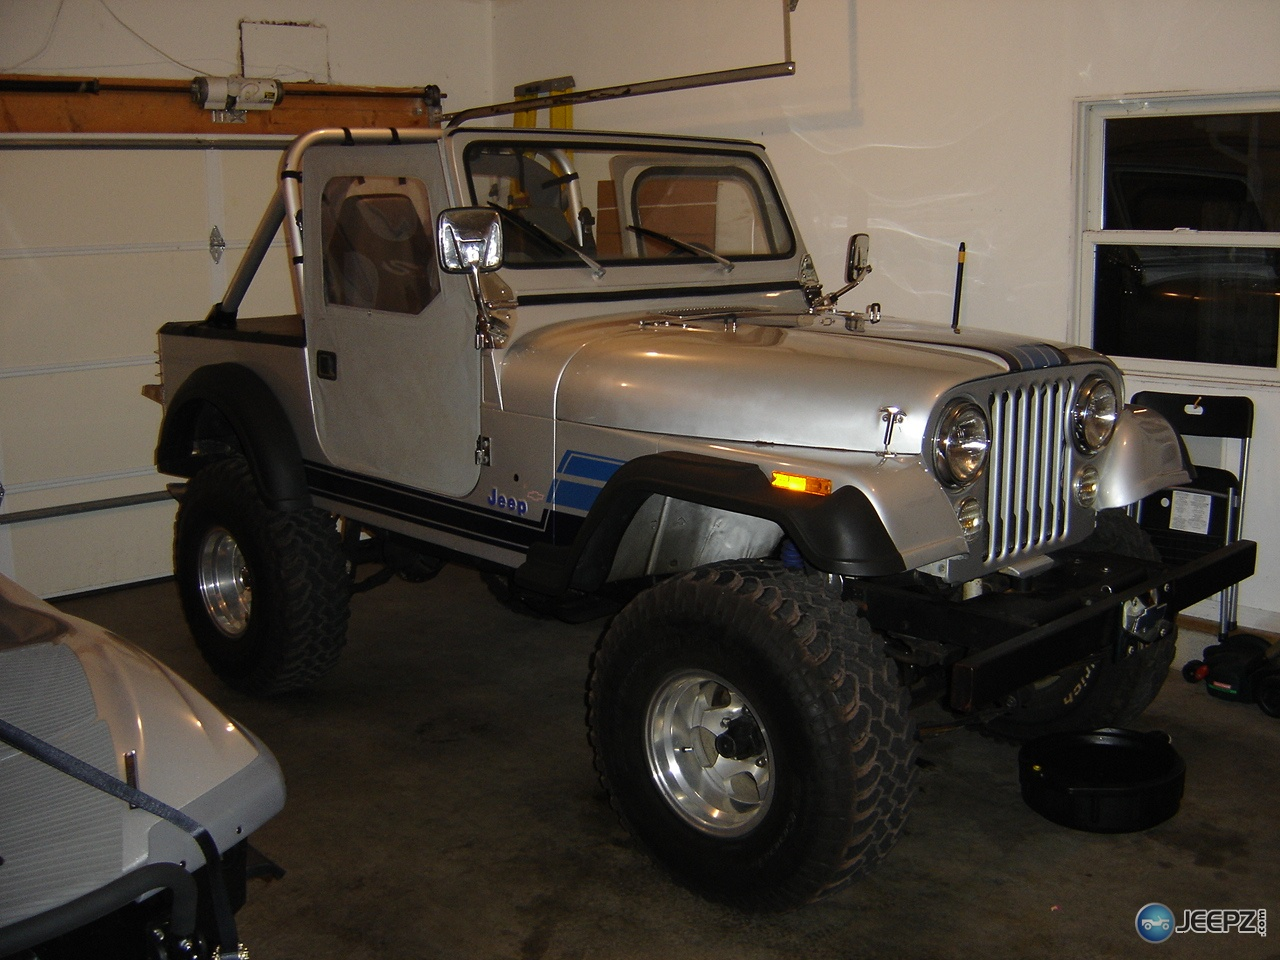 Jeeps For Sale In Florida >> 81 Jeep CJ-7 FOR SALE